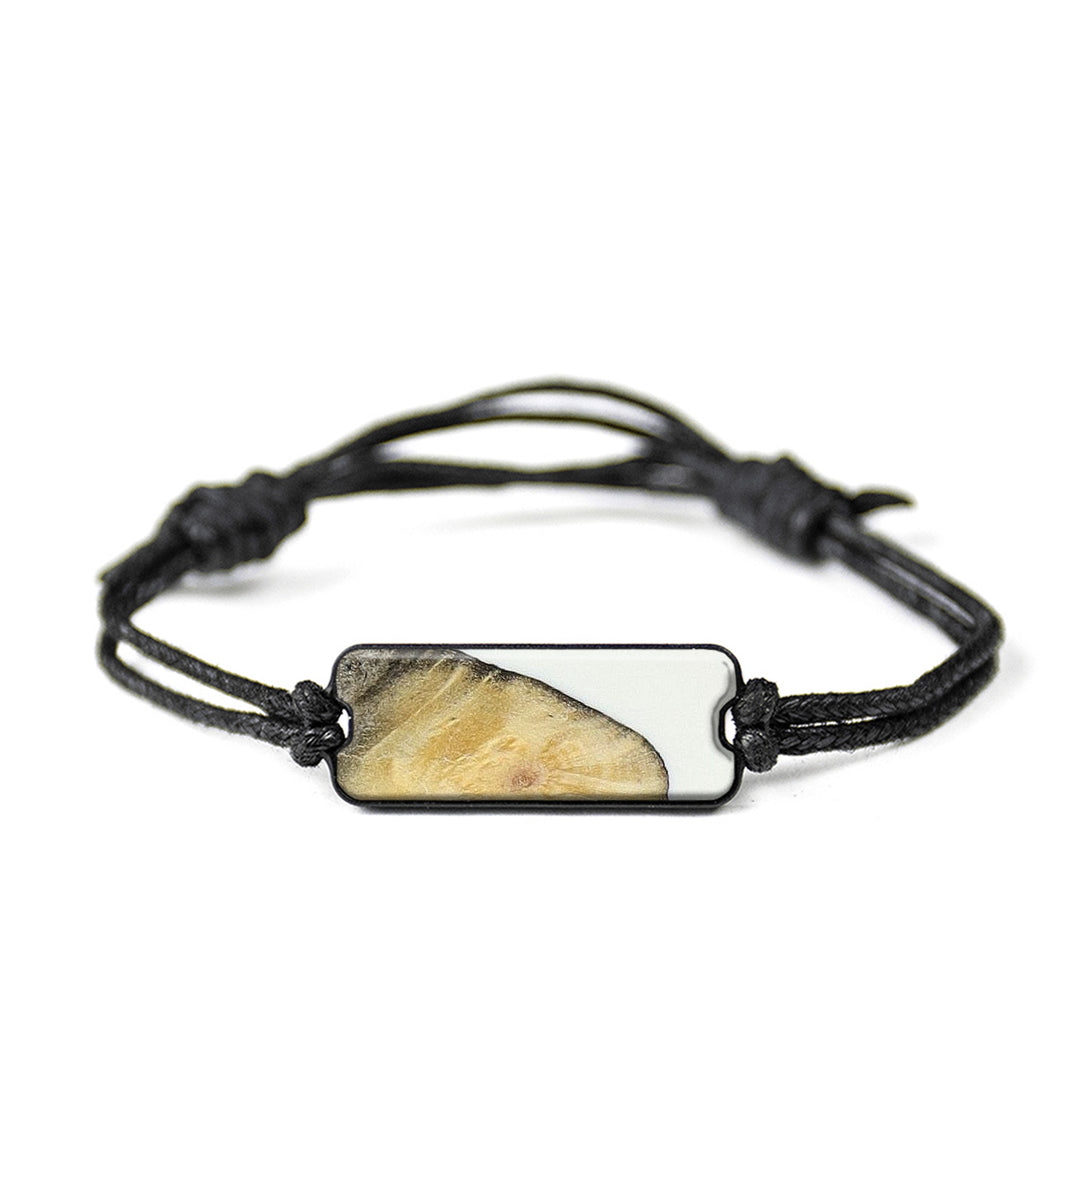 Classic Wood+Resin Bracelet - Bamby (Black & White, 394169)